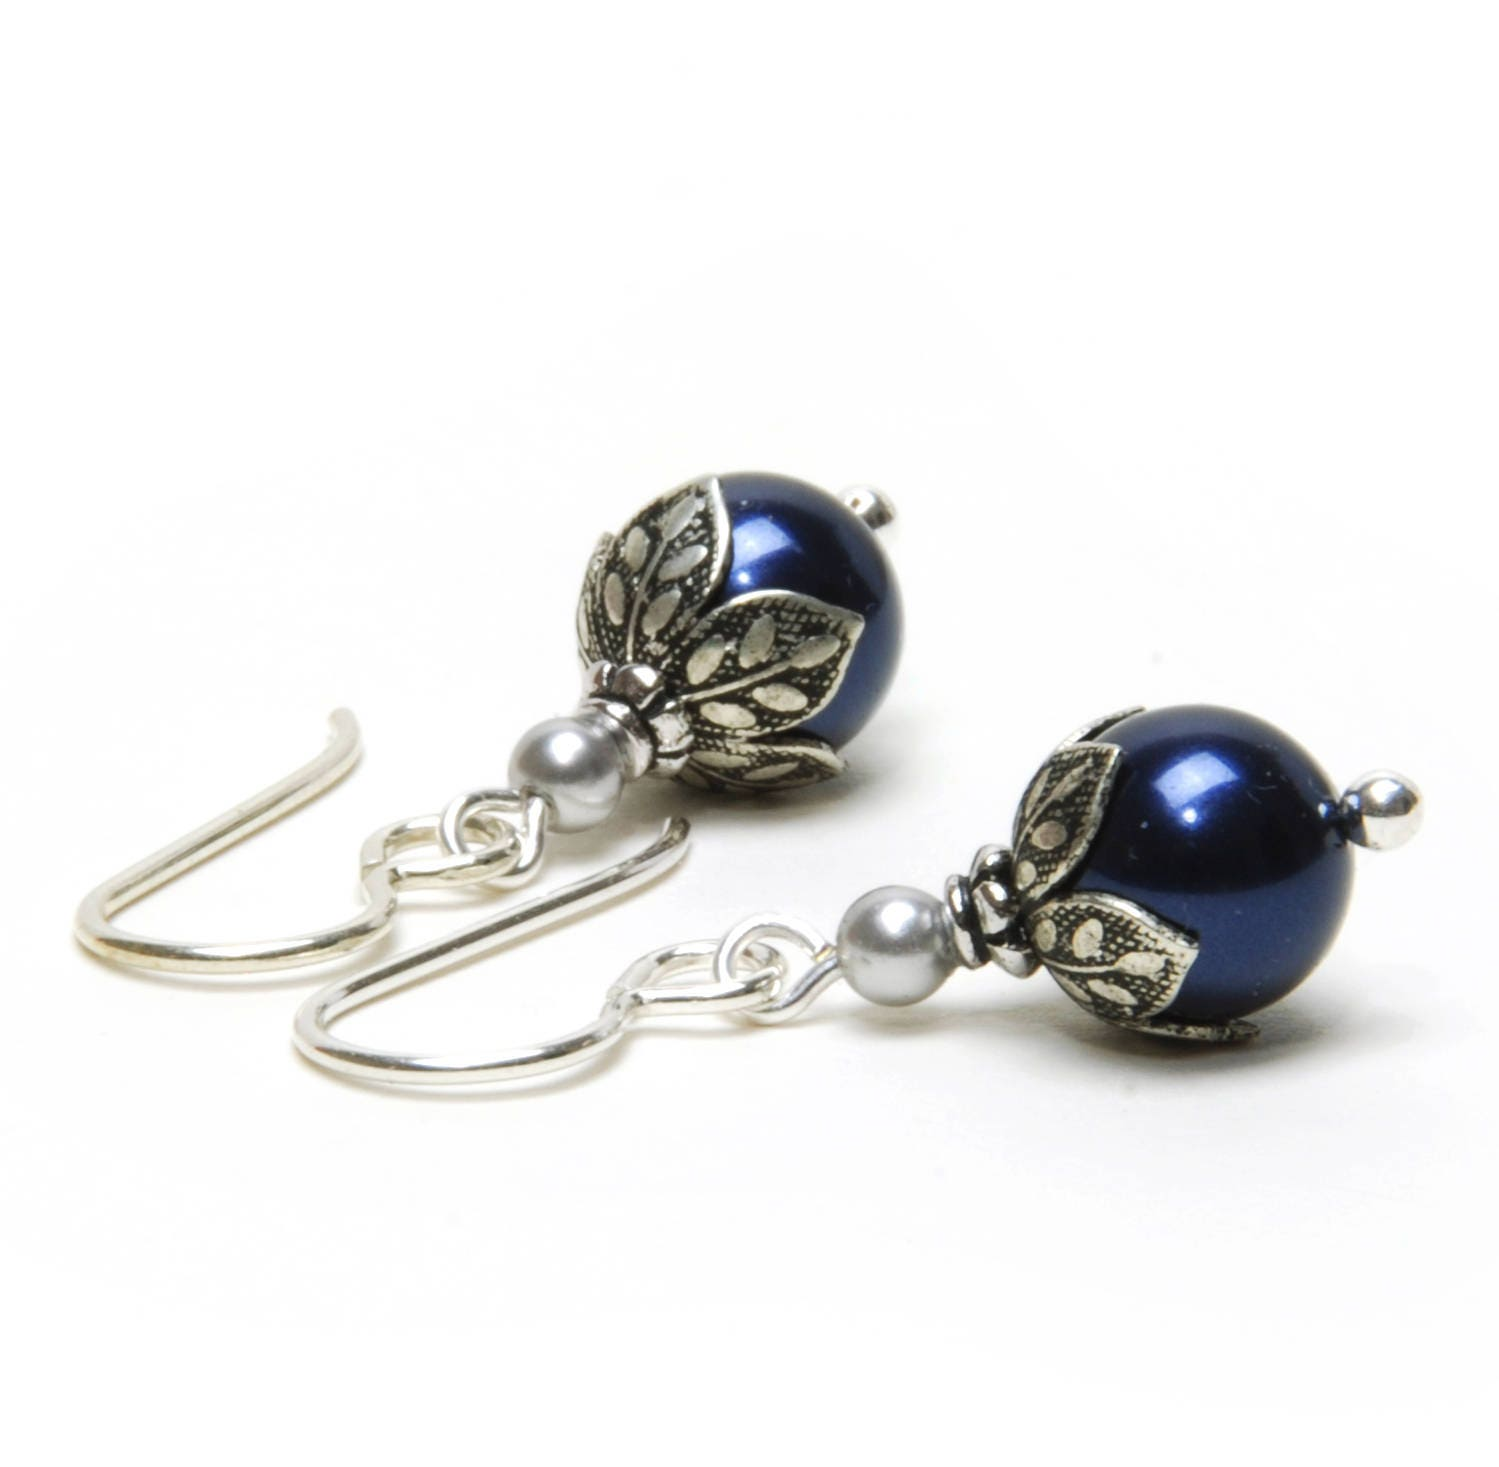 Small Blue Earrings: Small Dark Navy Blue Earrings Night Blue Swarovski Crystal